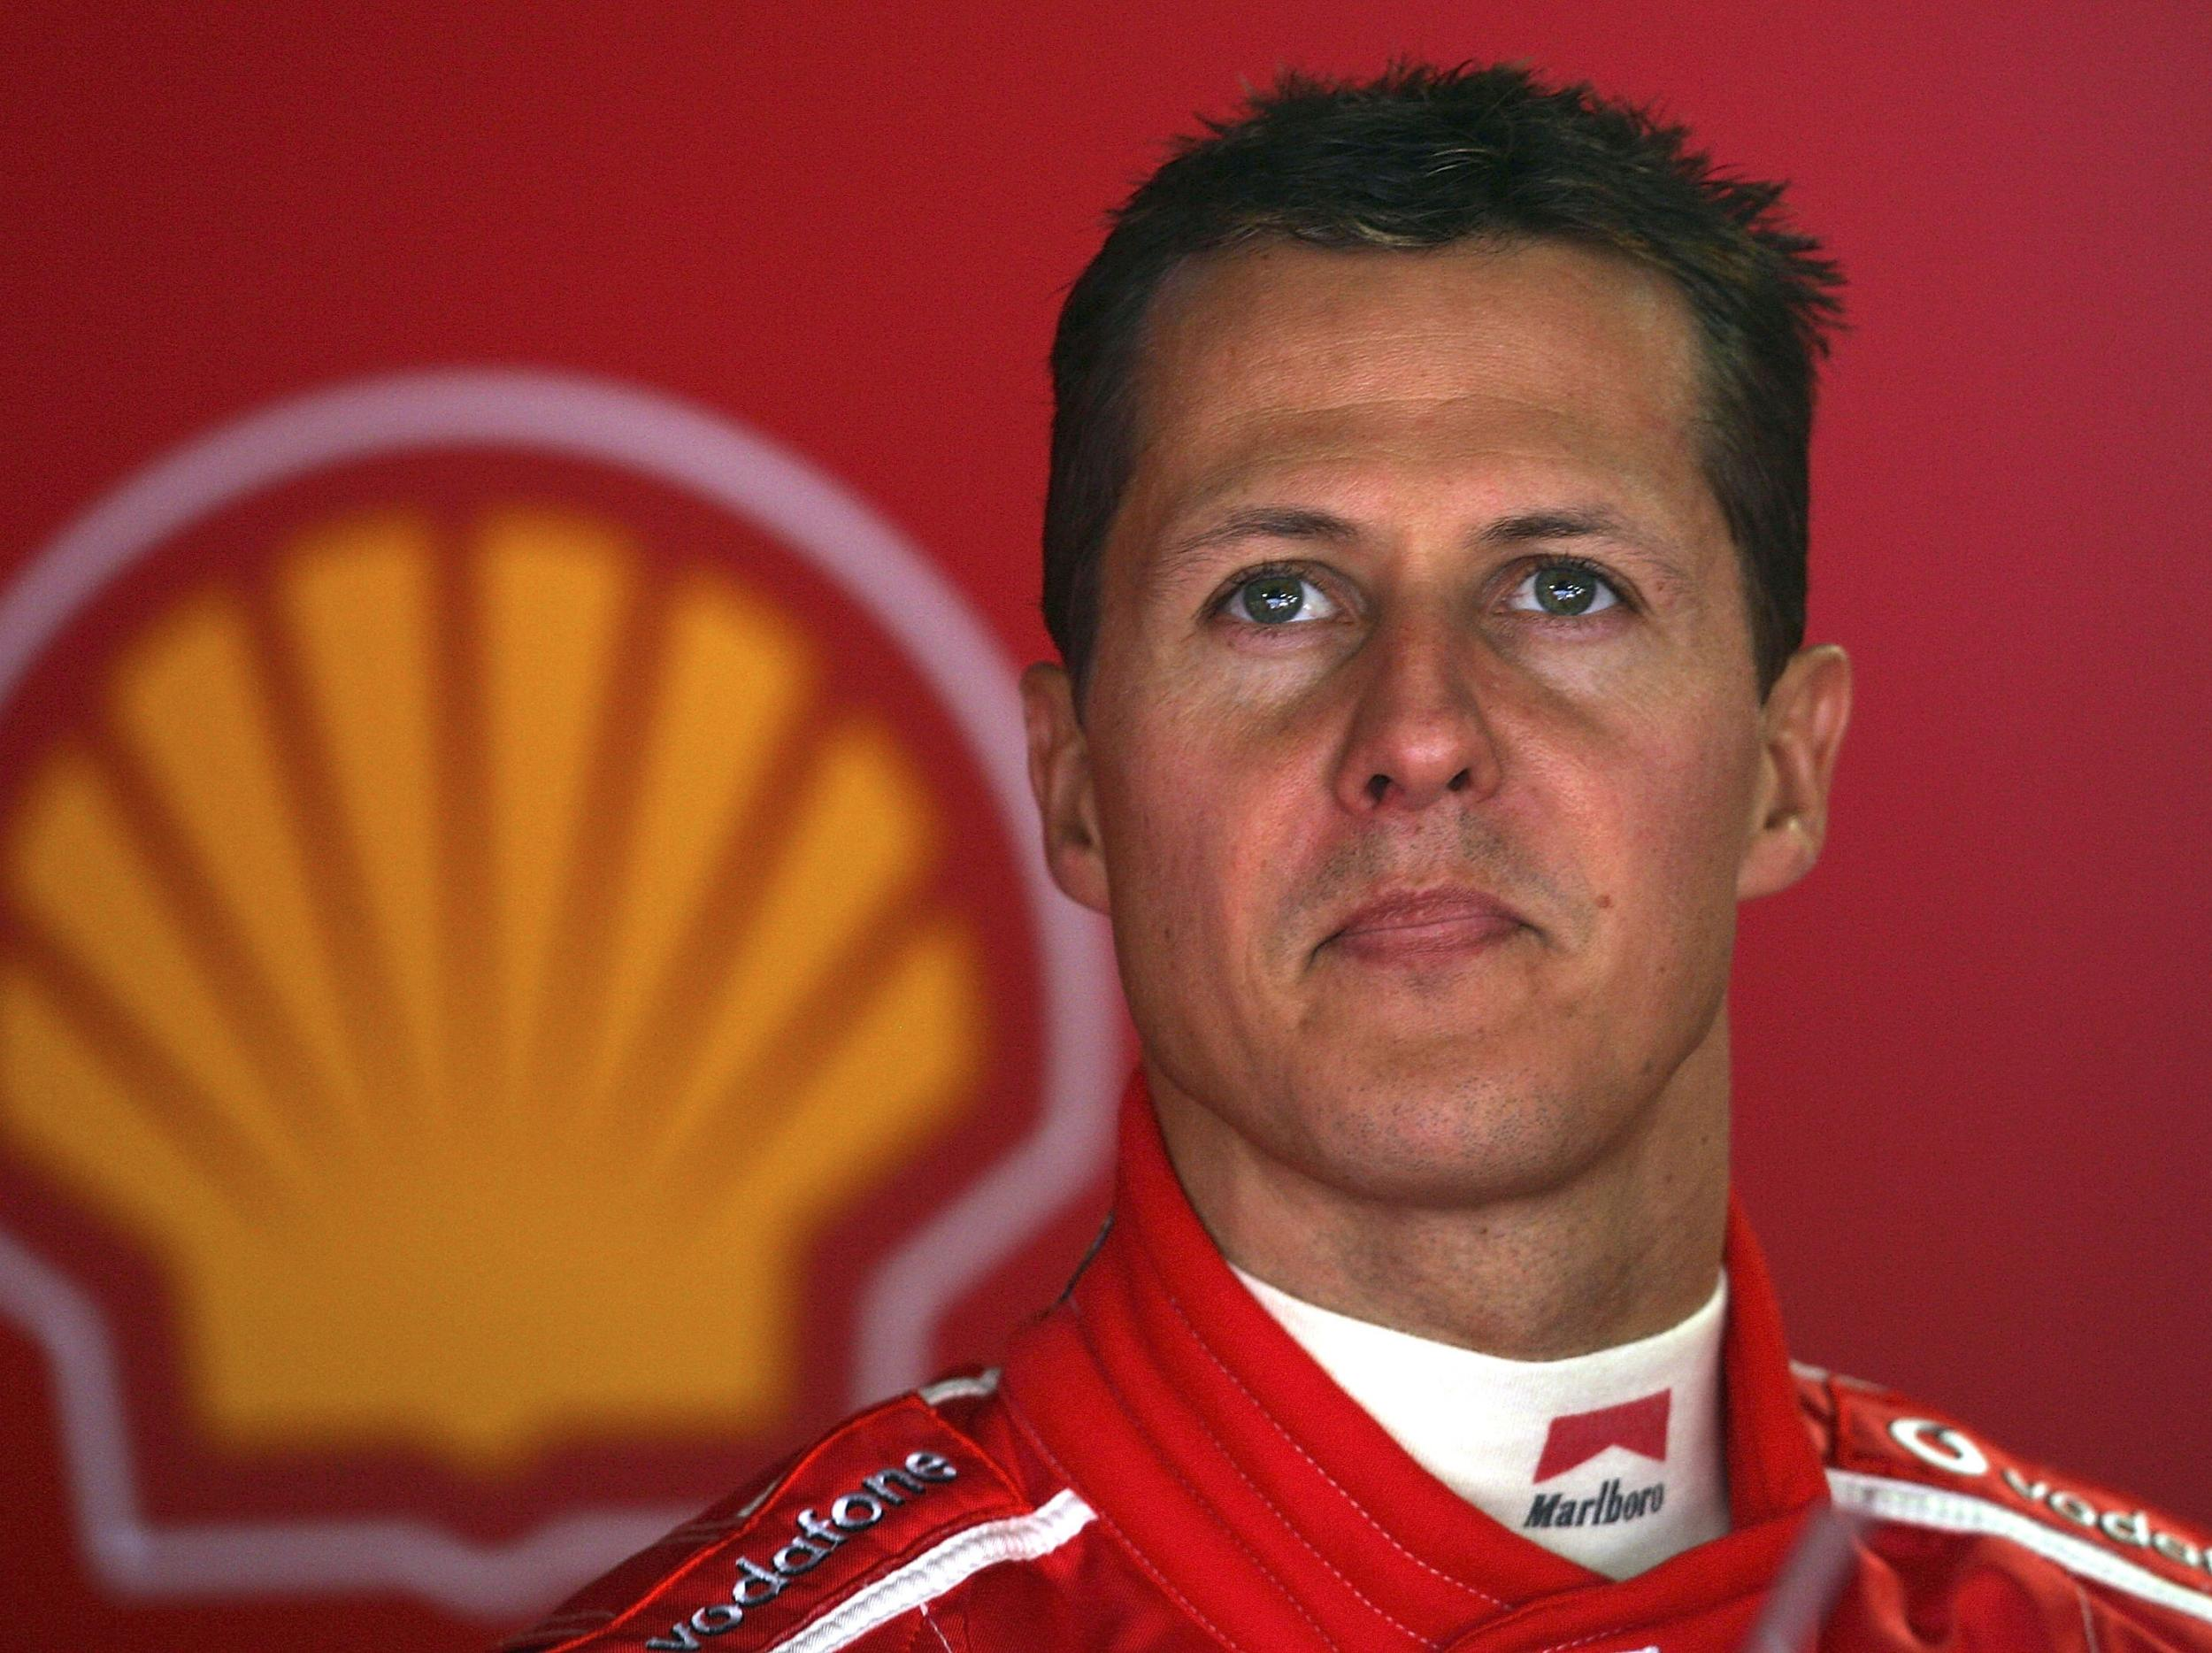 Michael Schumacher news: F1 legend's health 'very altered and deteriorated' says Italian neurosurgeon